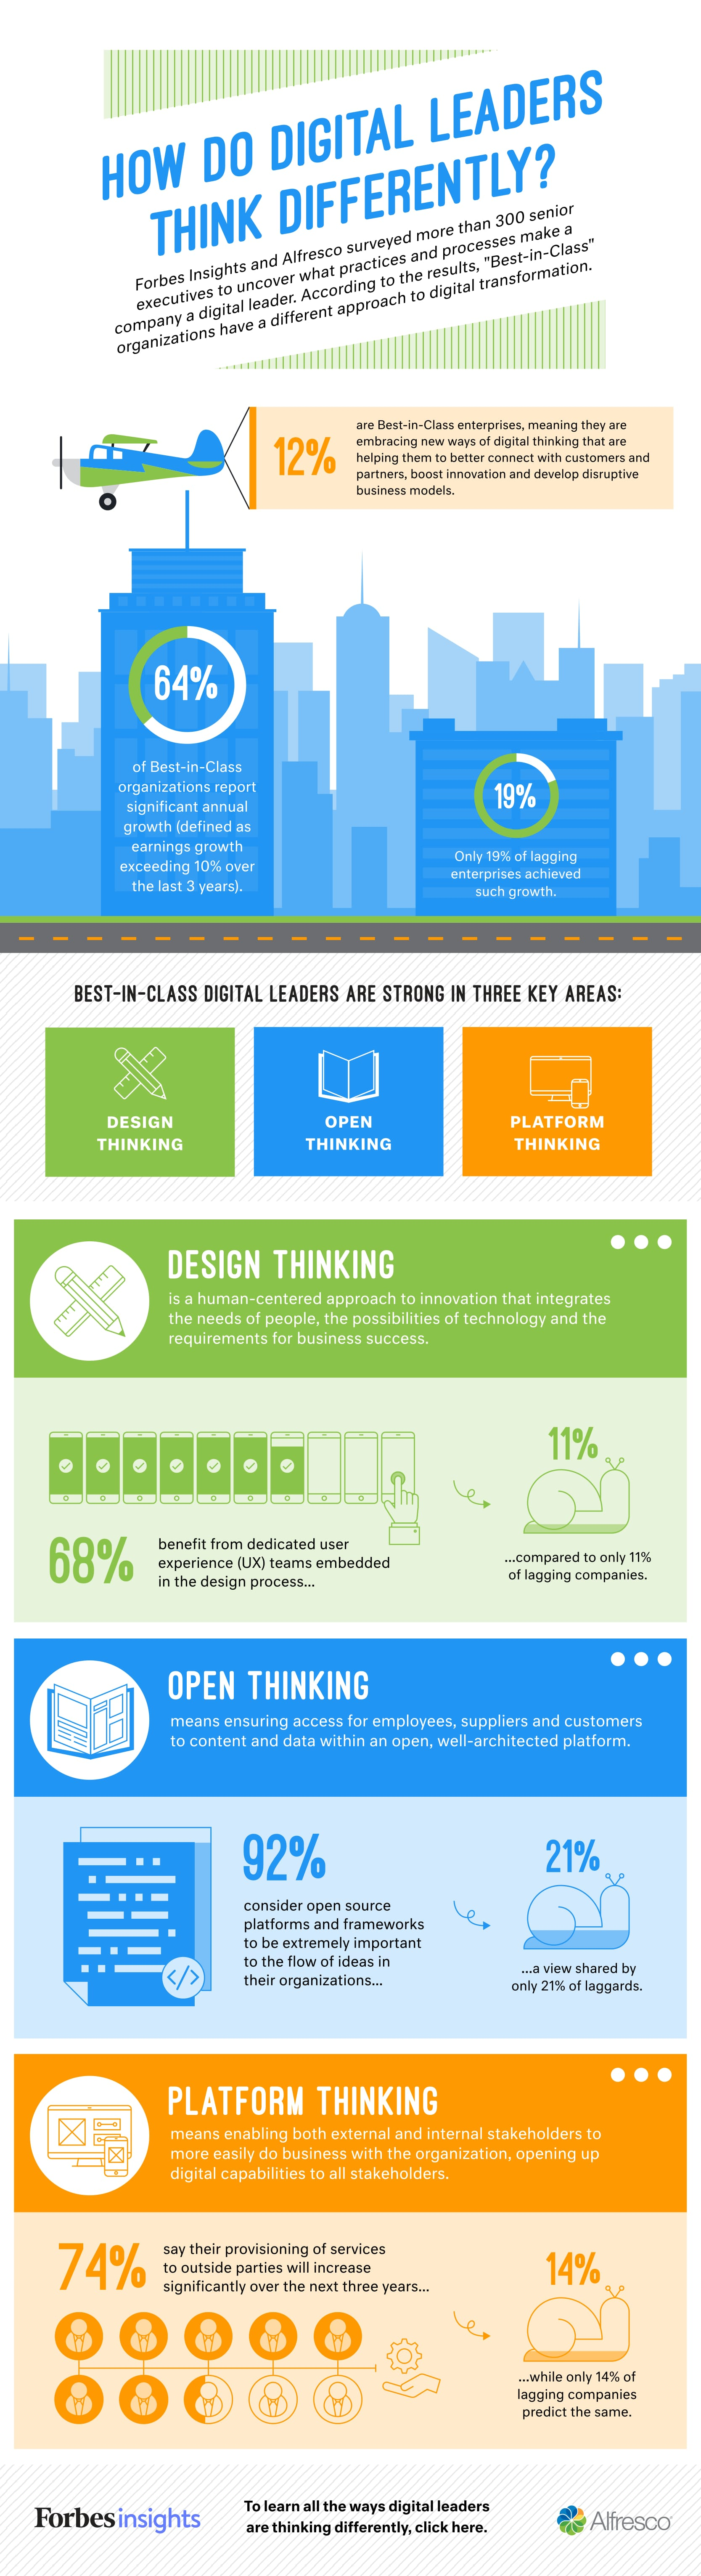 How Do Digital Leaders Think Differently?